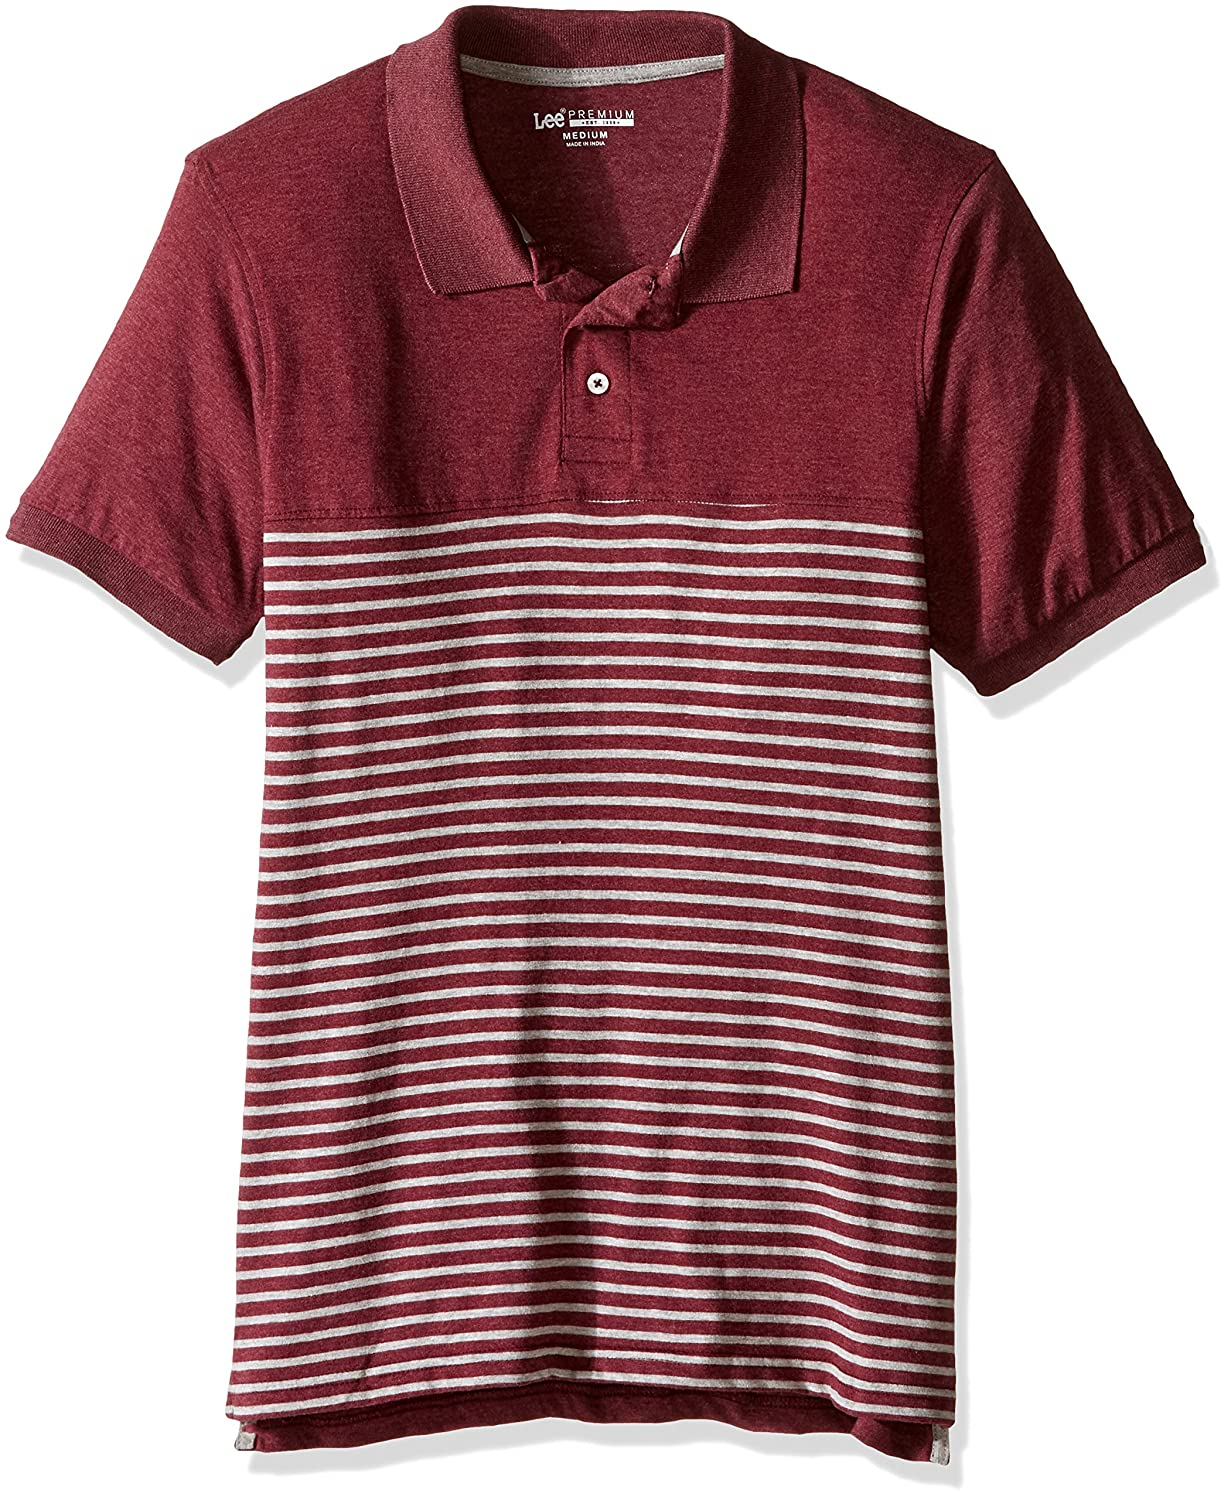 LEE Mens and Tall Paul Polo, Maroon, XXL: Amazon.es: Ropa y ...